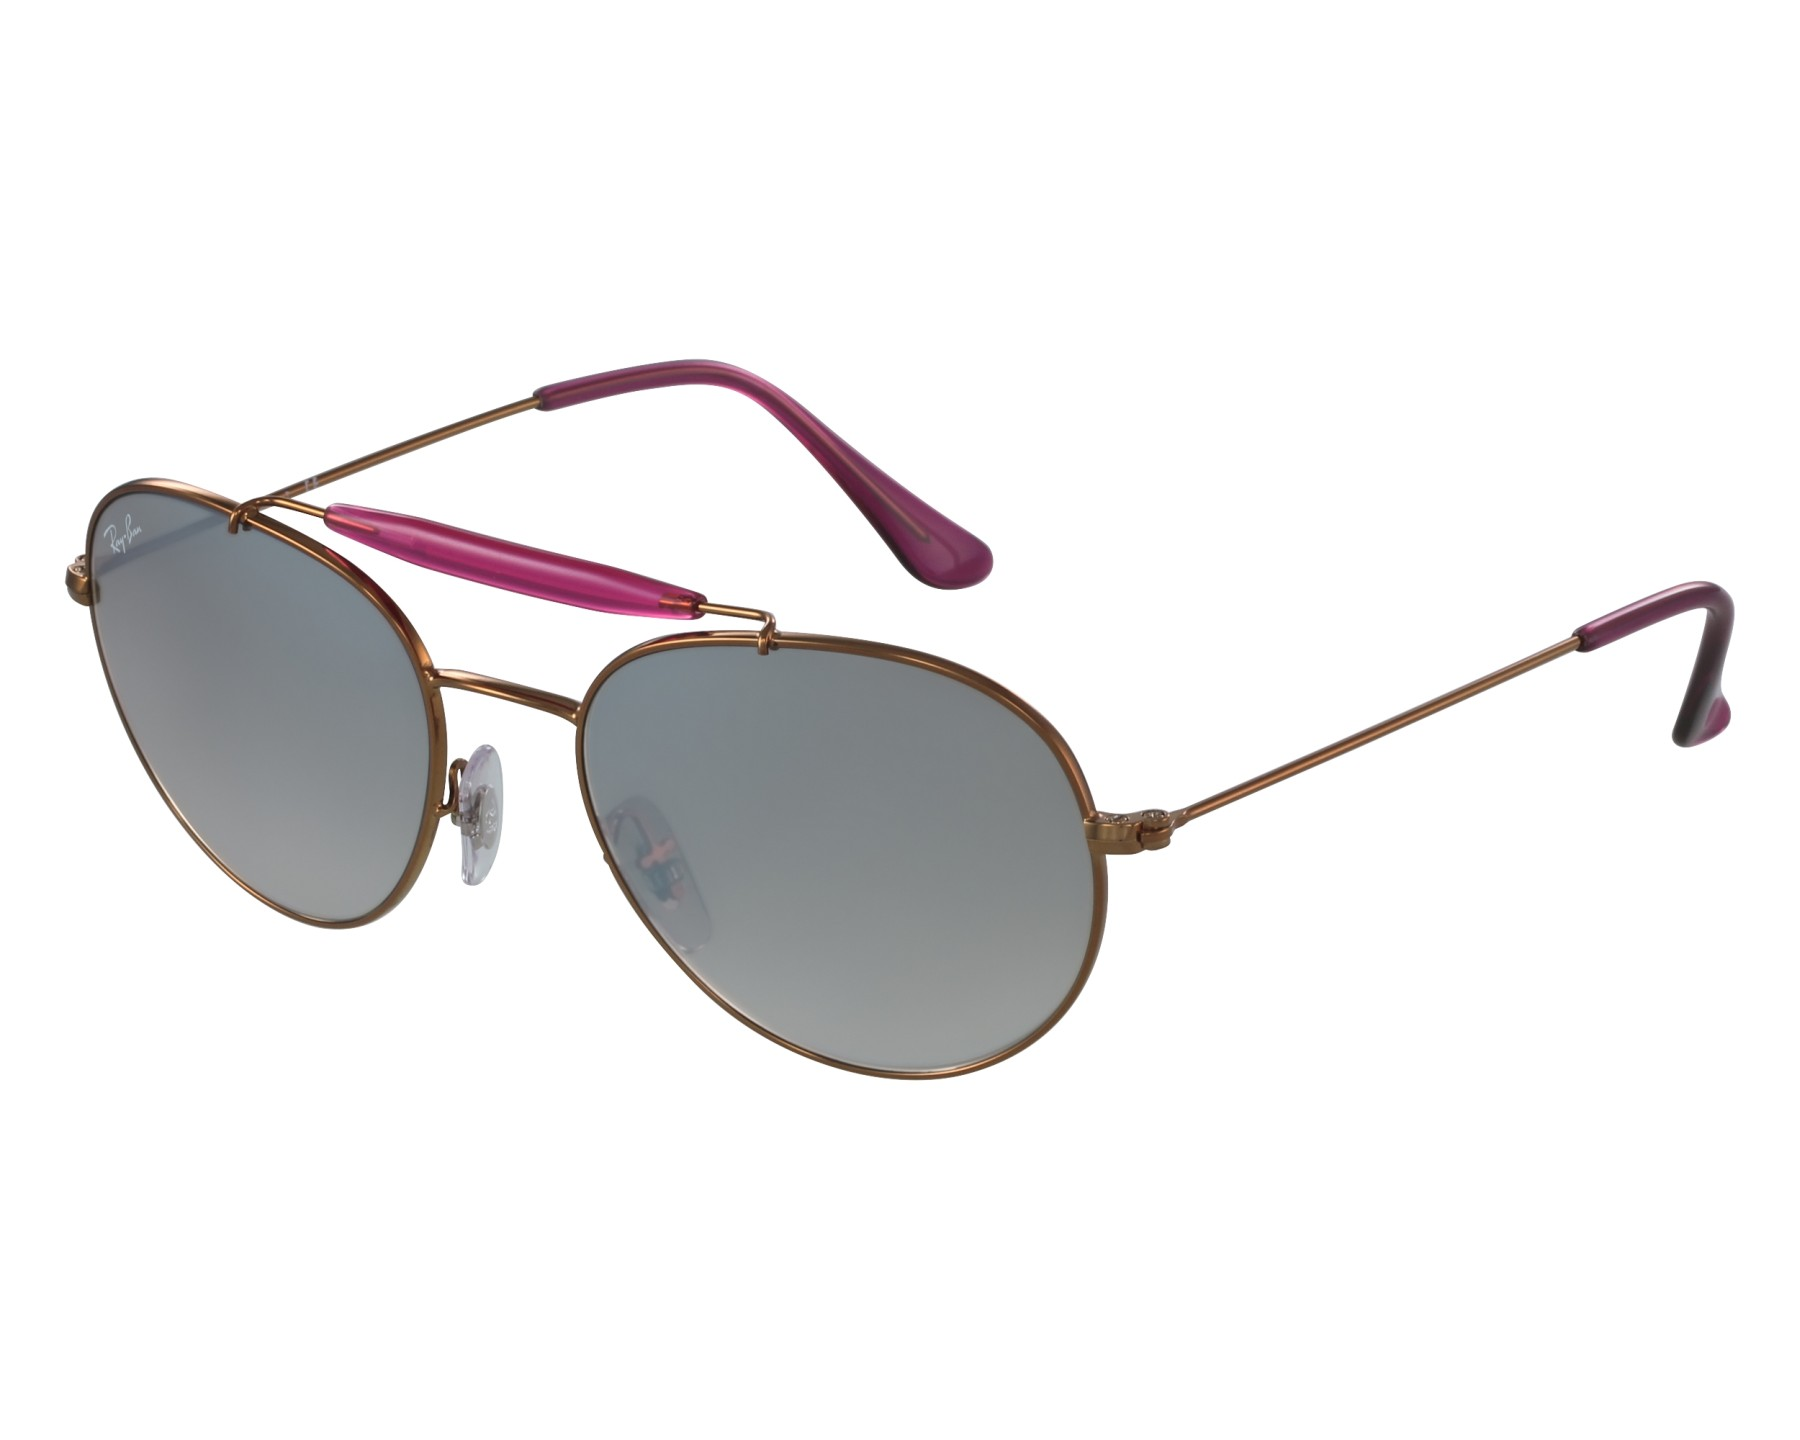 534781c7fb Sunglasses Ray-Ban RB-3540 198 90 53-18 Gold Pink front